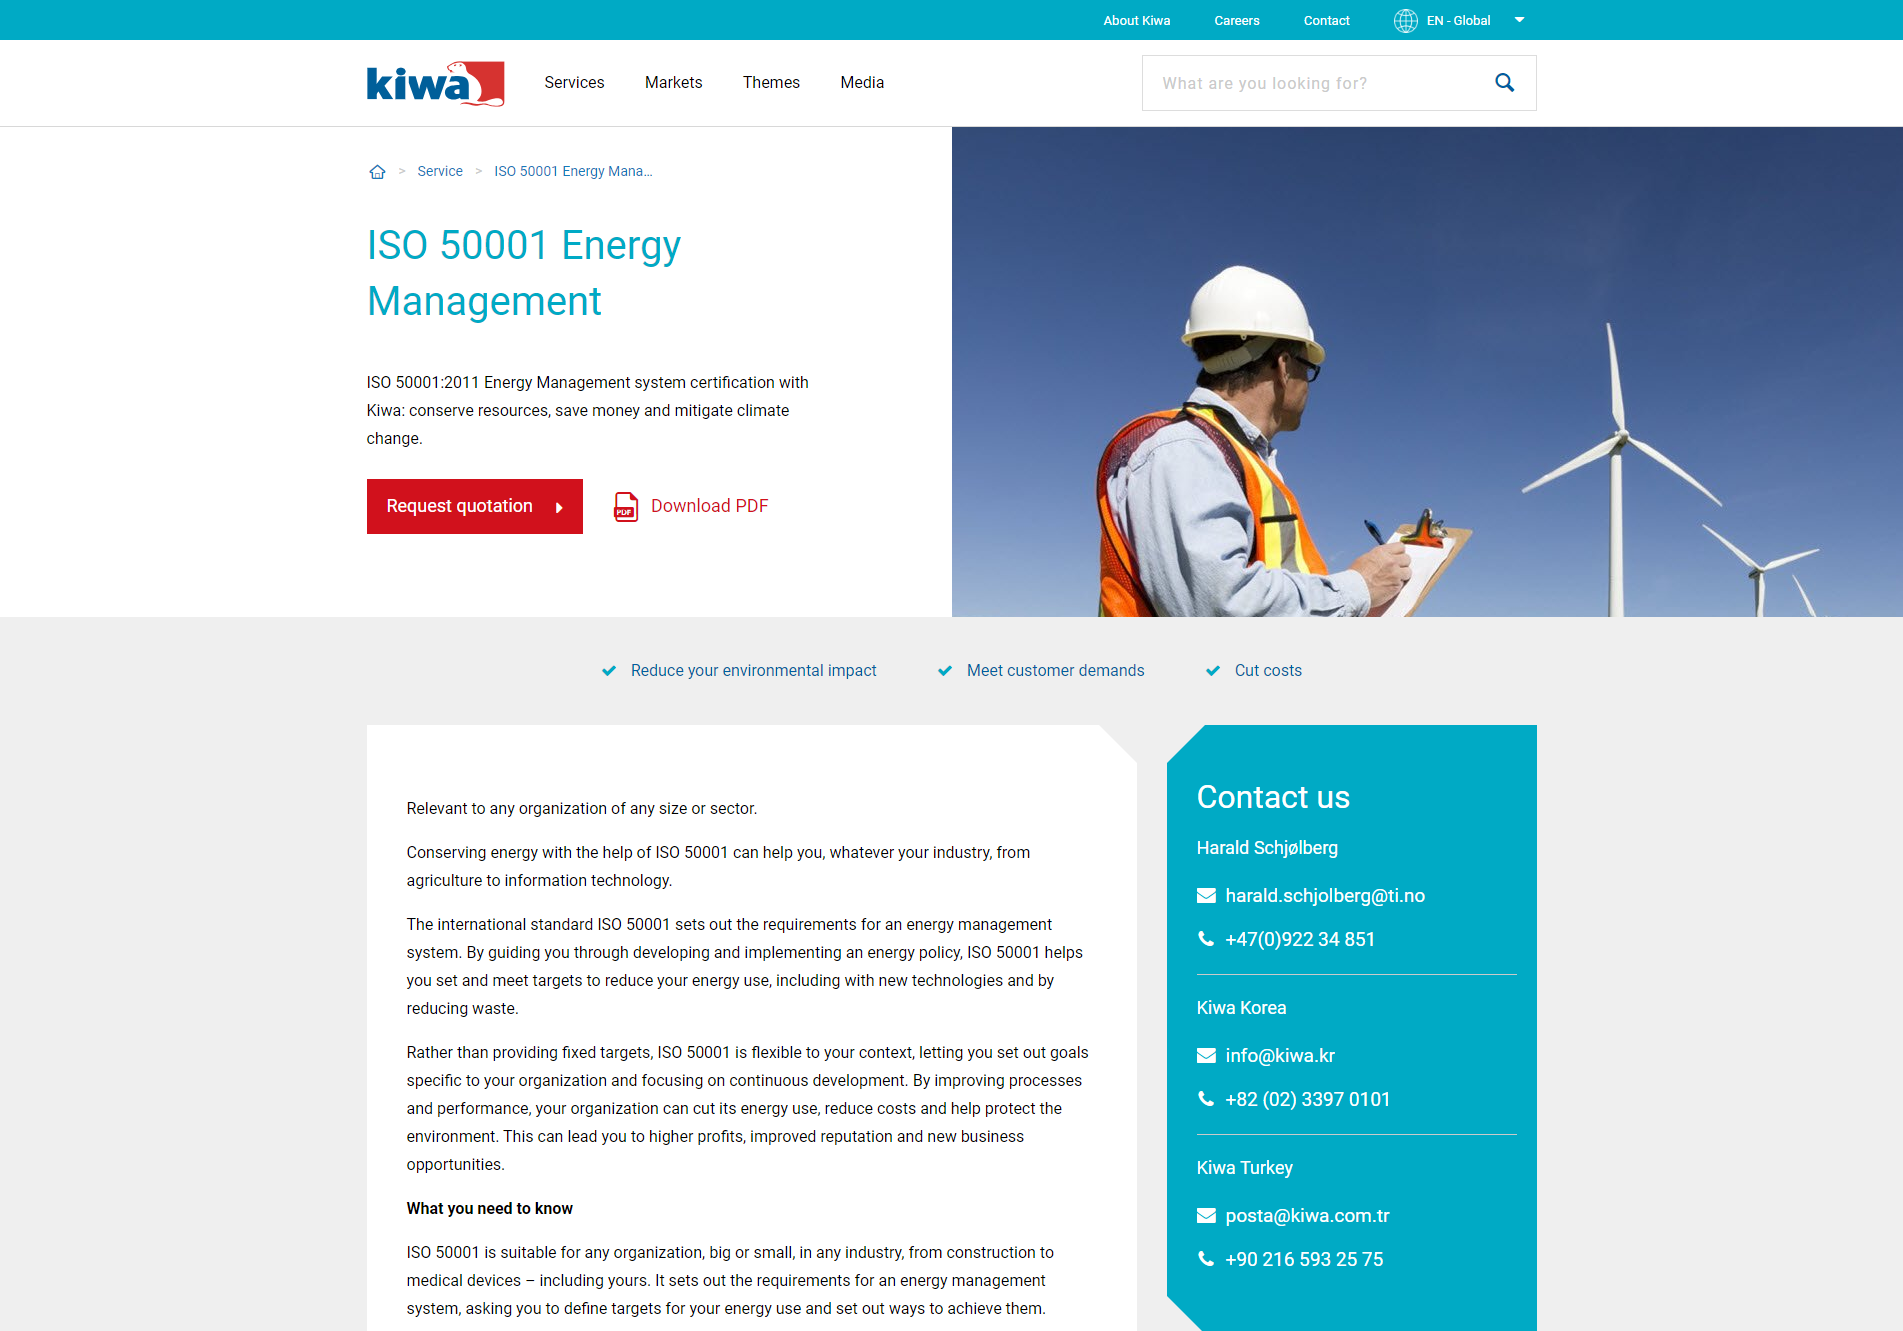 Kiwa - Product Information Management